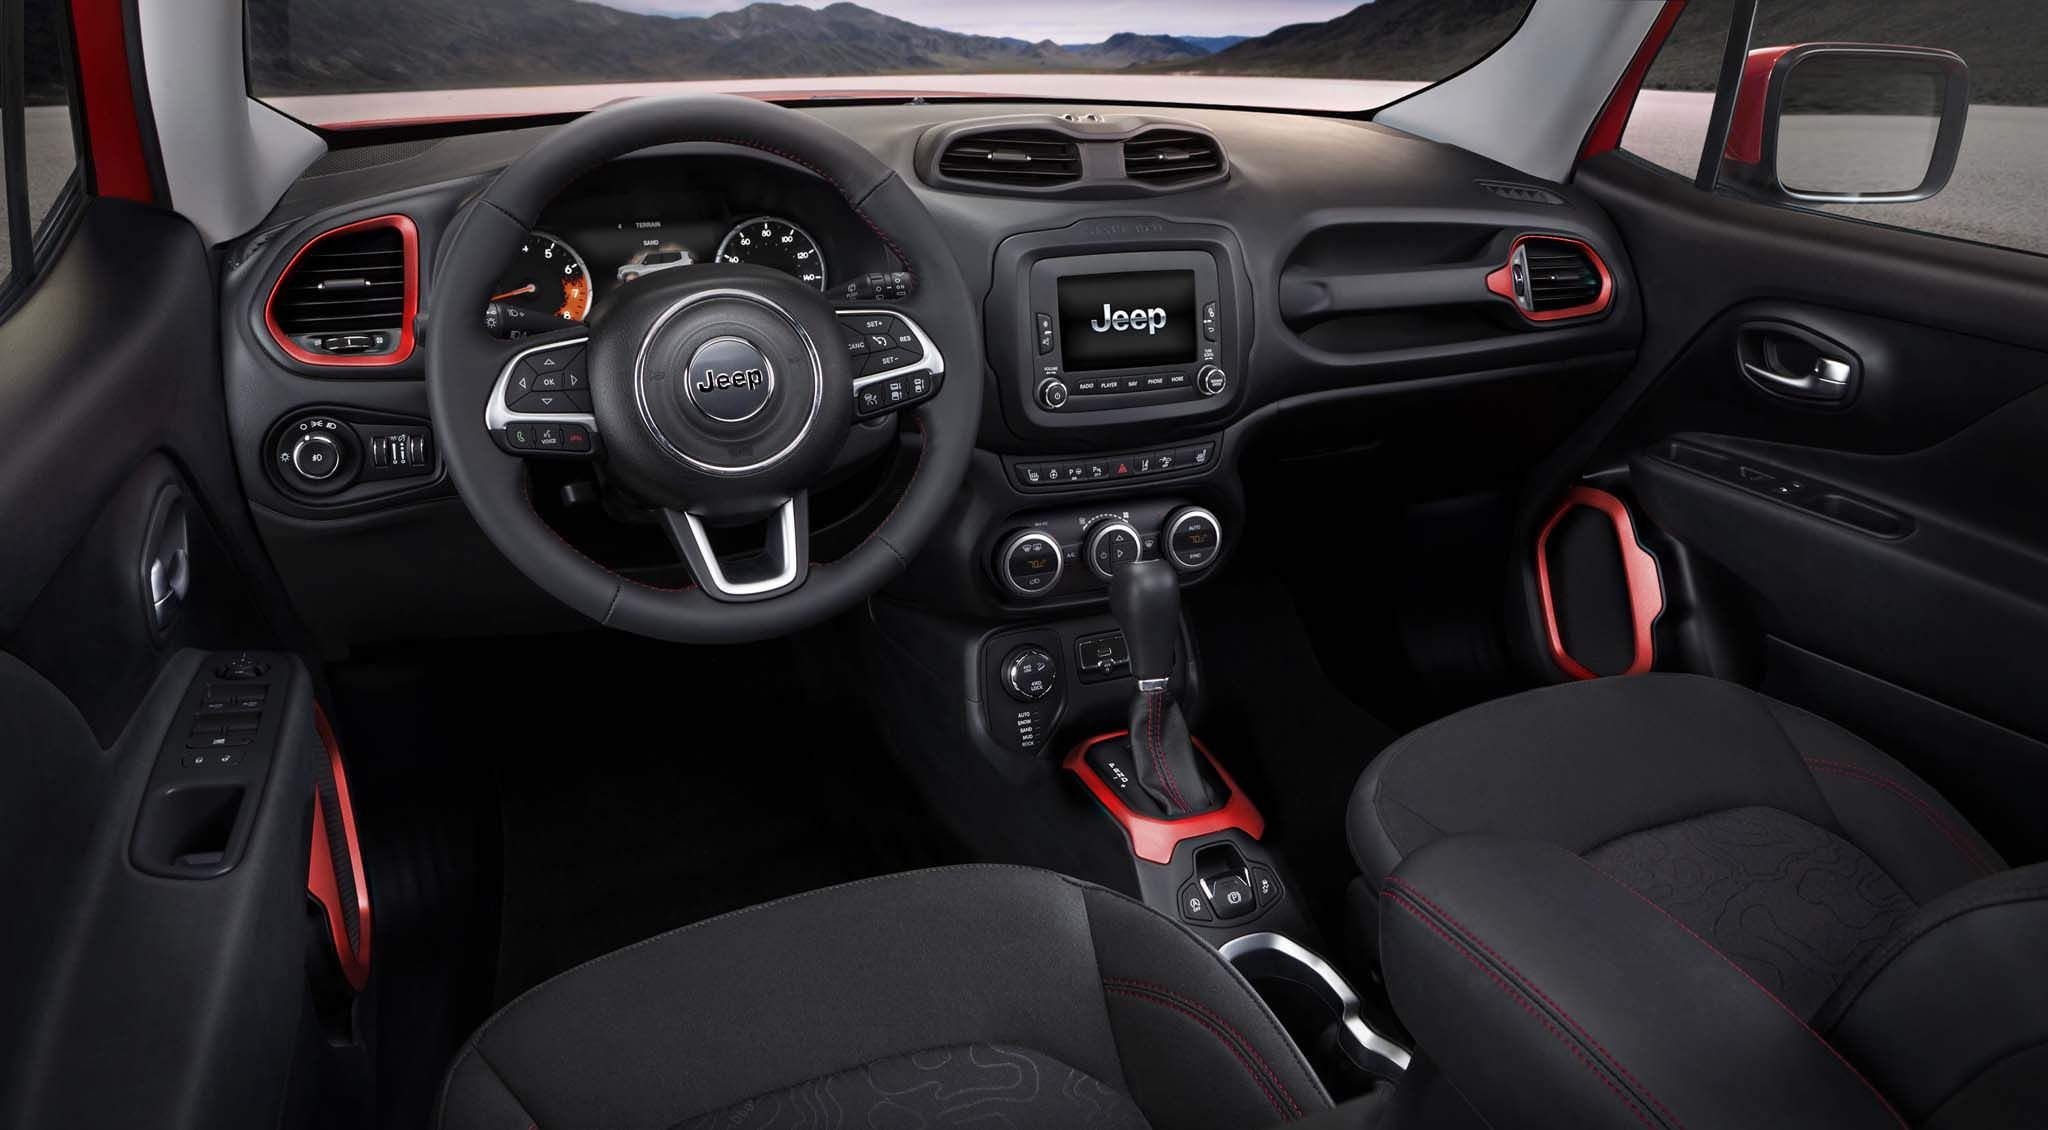 Jeep Renegade Trailhawk Interior Hd Wallpaper Check more at